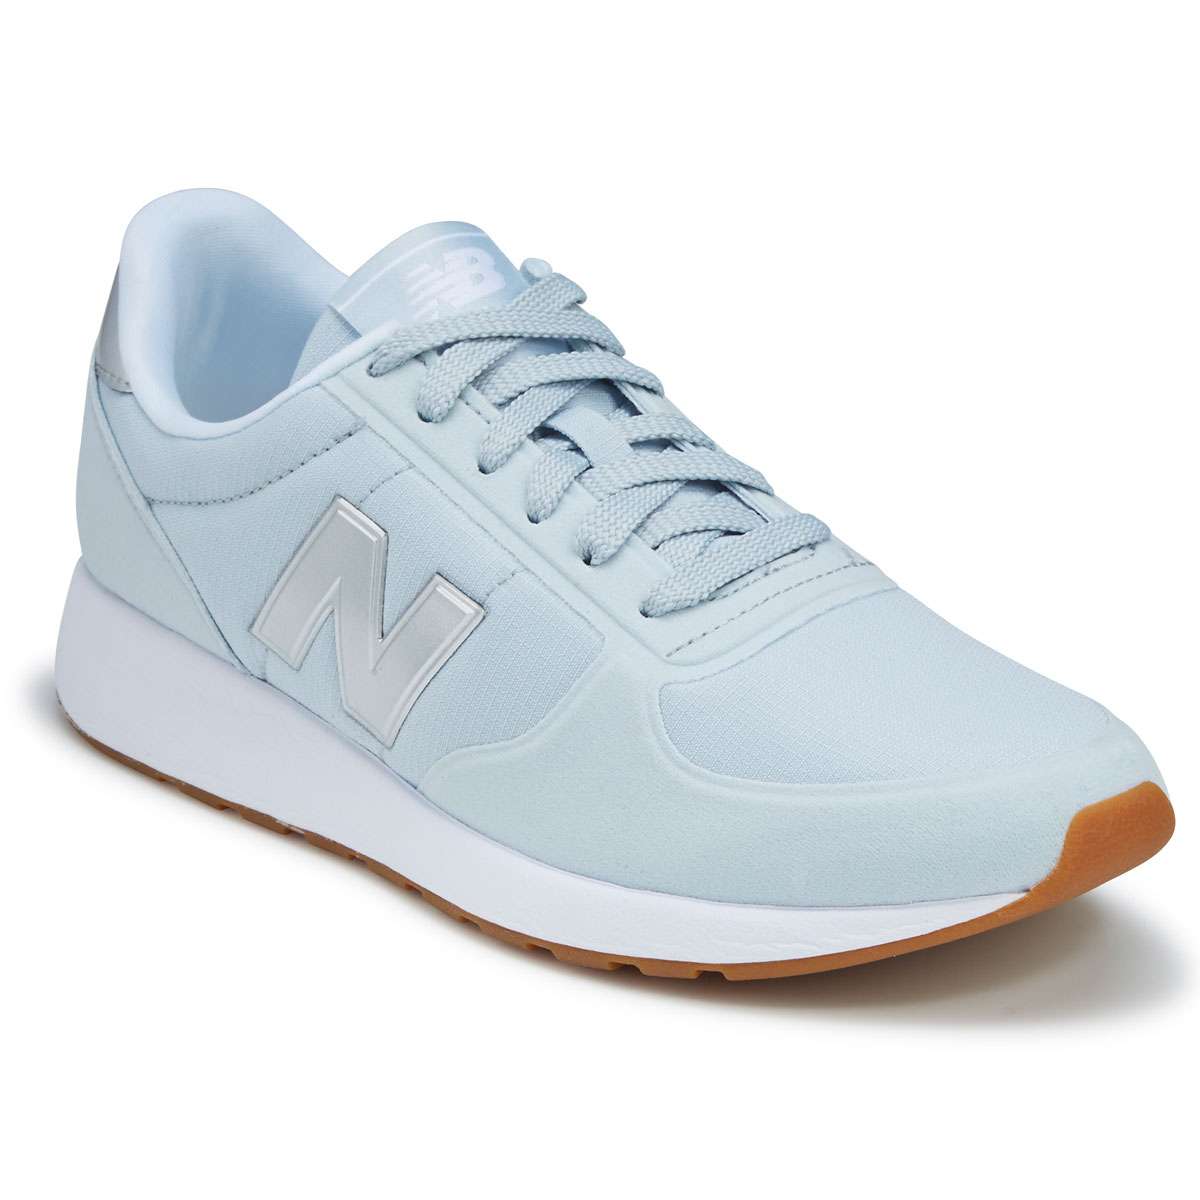 New Balance Women's 215V1 Sneakers - Blue, 8.5